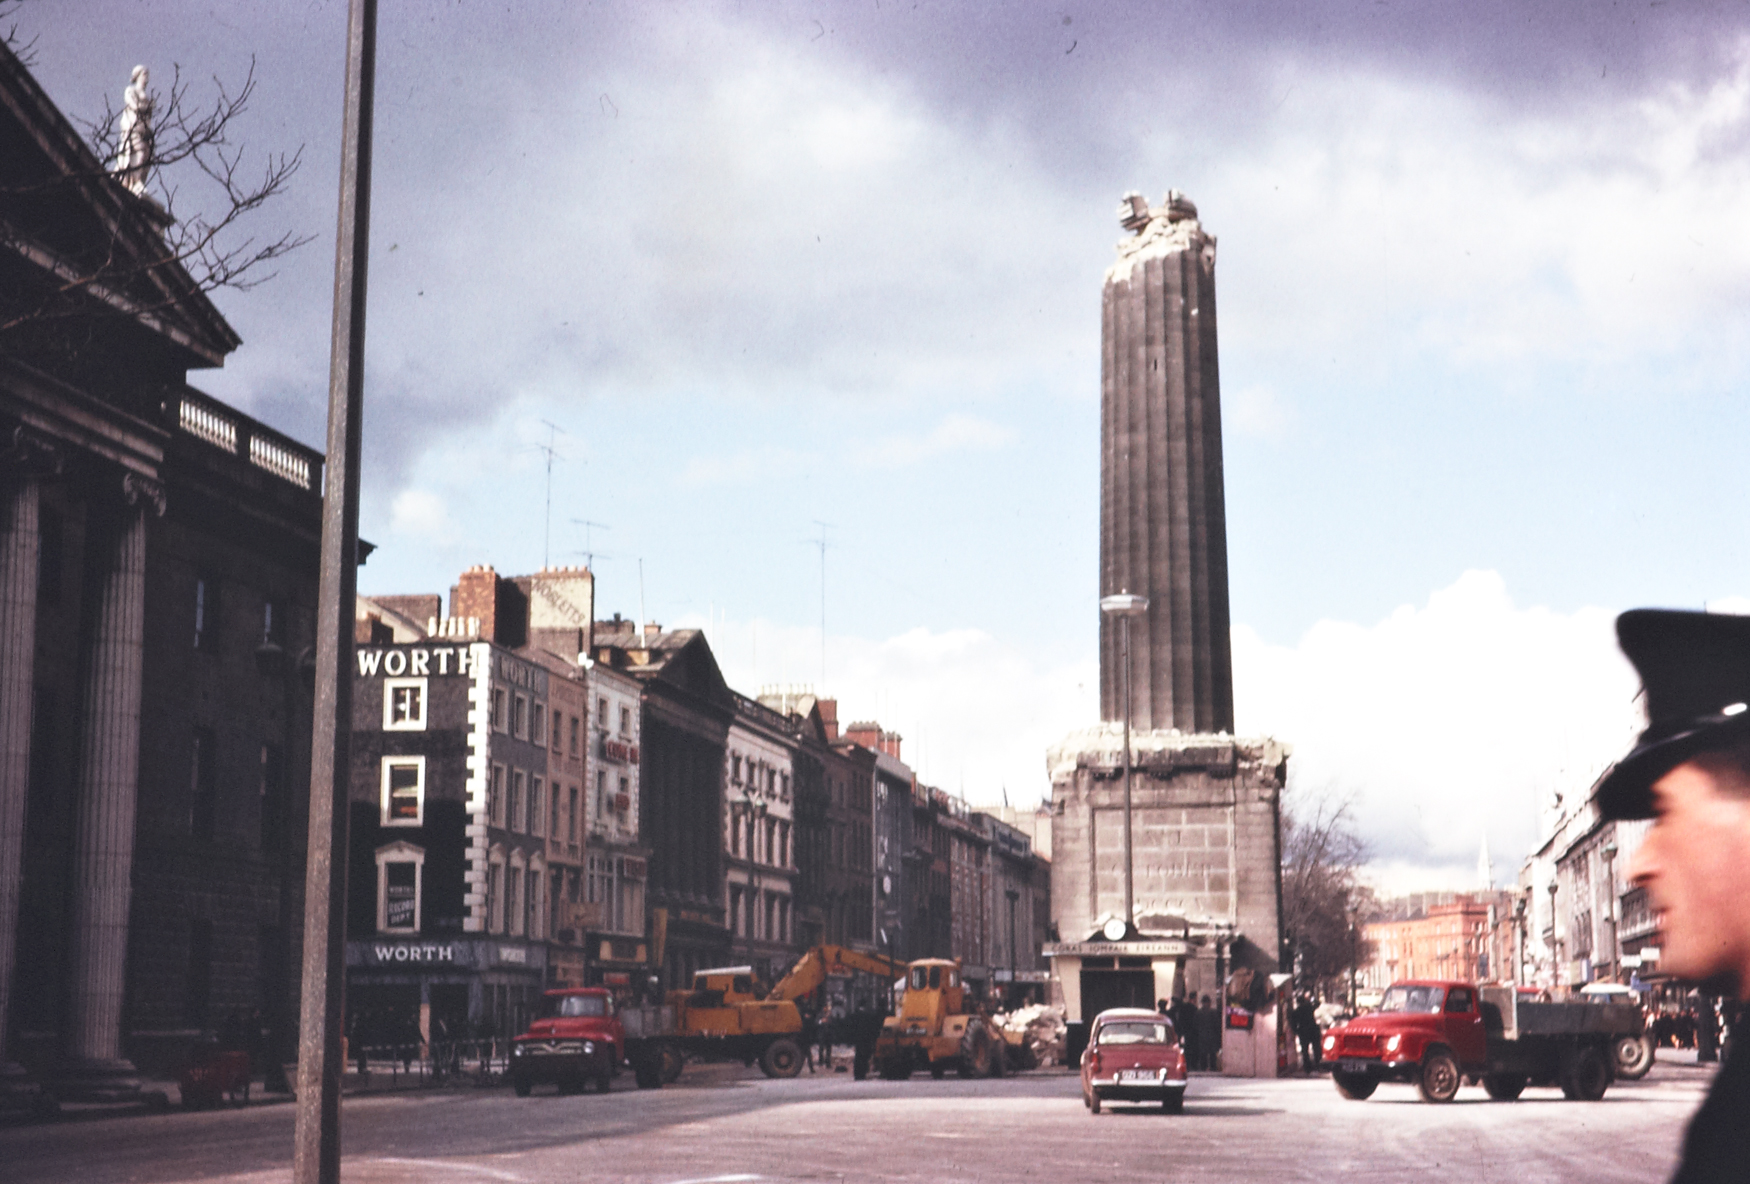 "Ireland 1960s, A half-demolished Nelson's Pillar on O'Connell Street, Dublin. From the front page of the Irish Times on Tuesday, 8 March 1966: ""The top of Nelson Pillar, in O'Connell street, Dublin, was blown off by a tremendous explosion at 1.32 o'clock this morning and the Nelson statue and tons of rubble poured down into the roadway. By a miracle, nobody was injured, though there were a number of people in the area at the time."" Date: Tuesday, 8 March 1966"